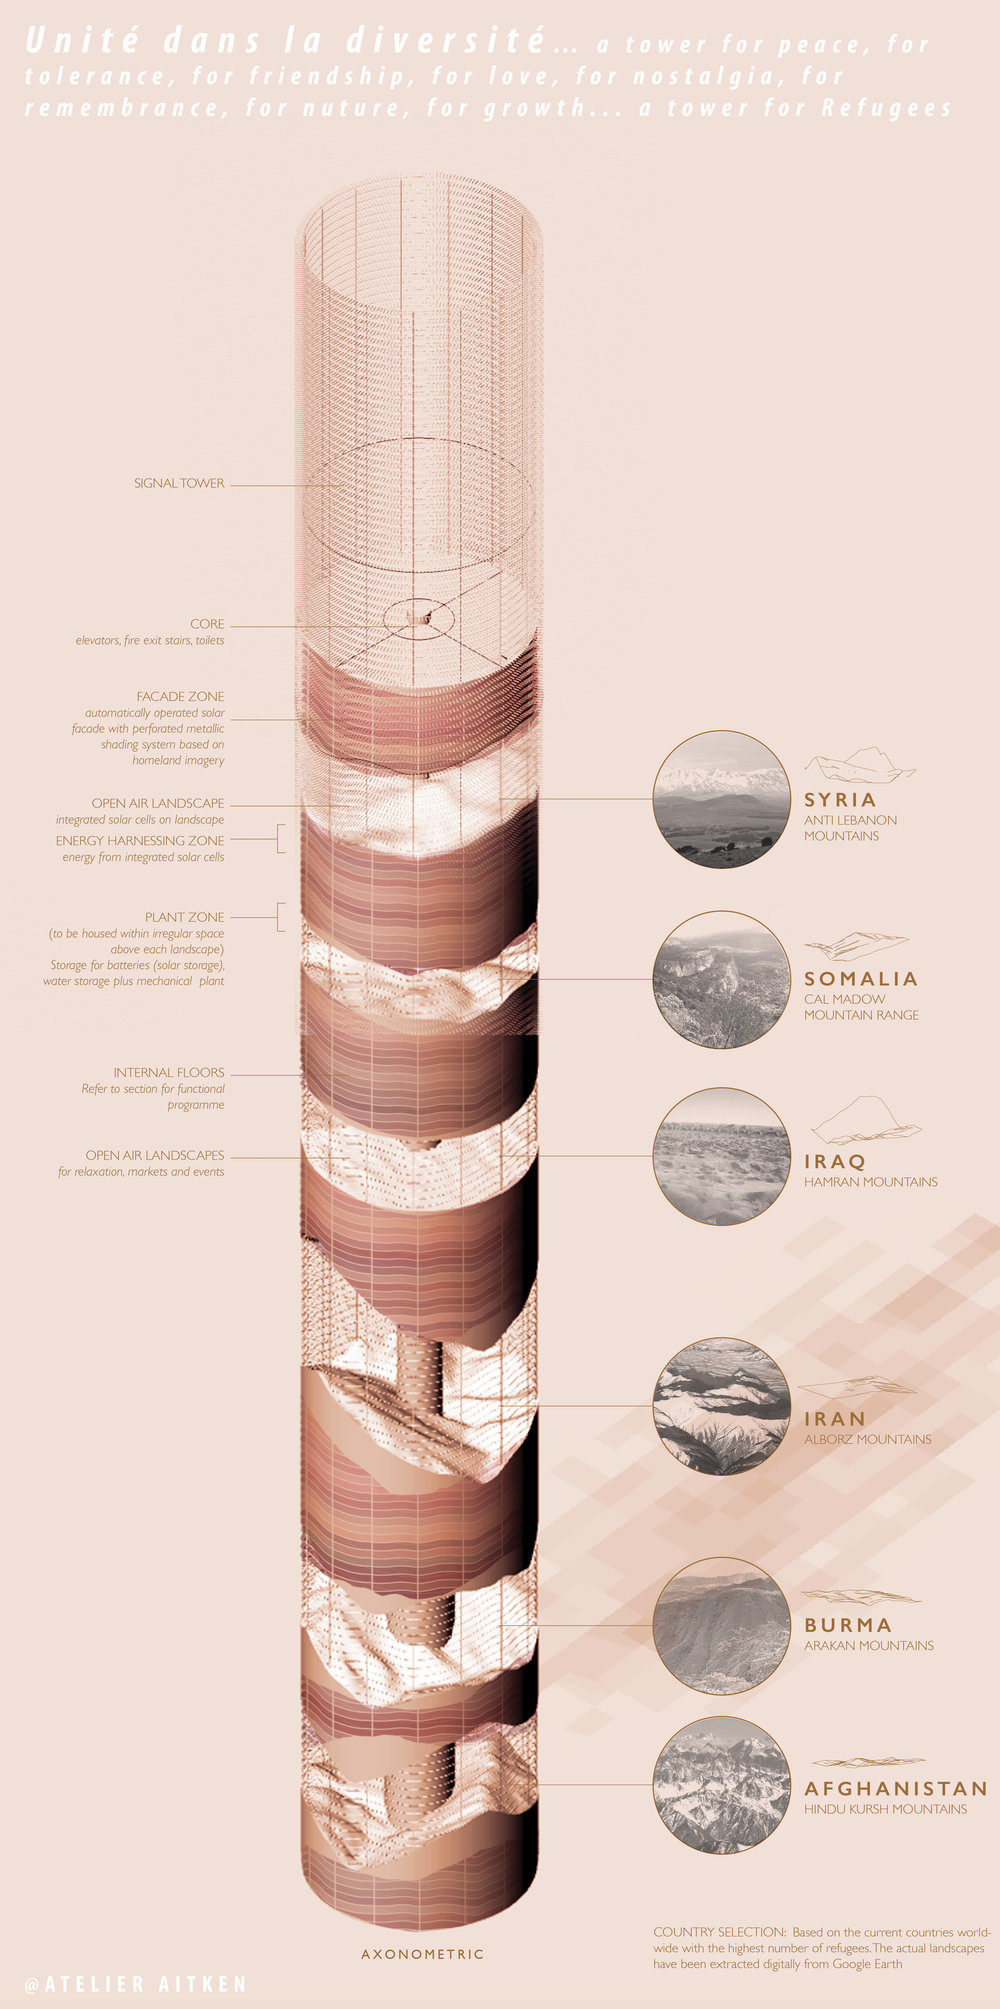 atelier aitken tower for refugees axo diagram